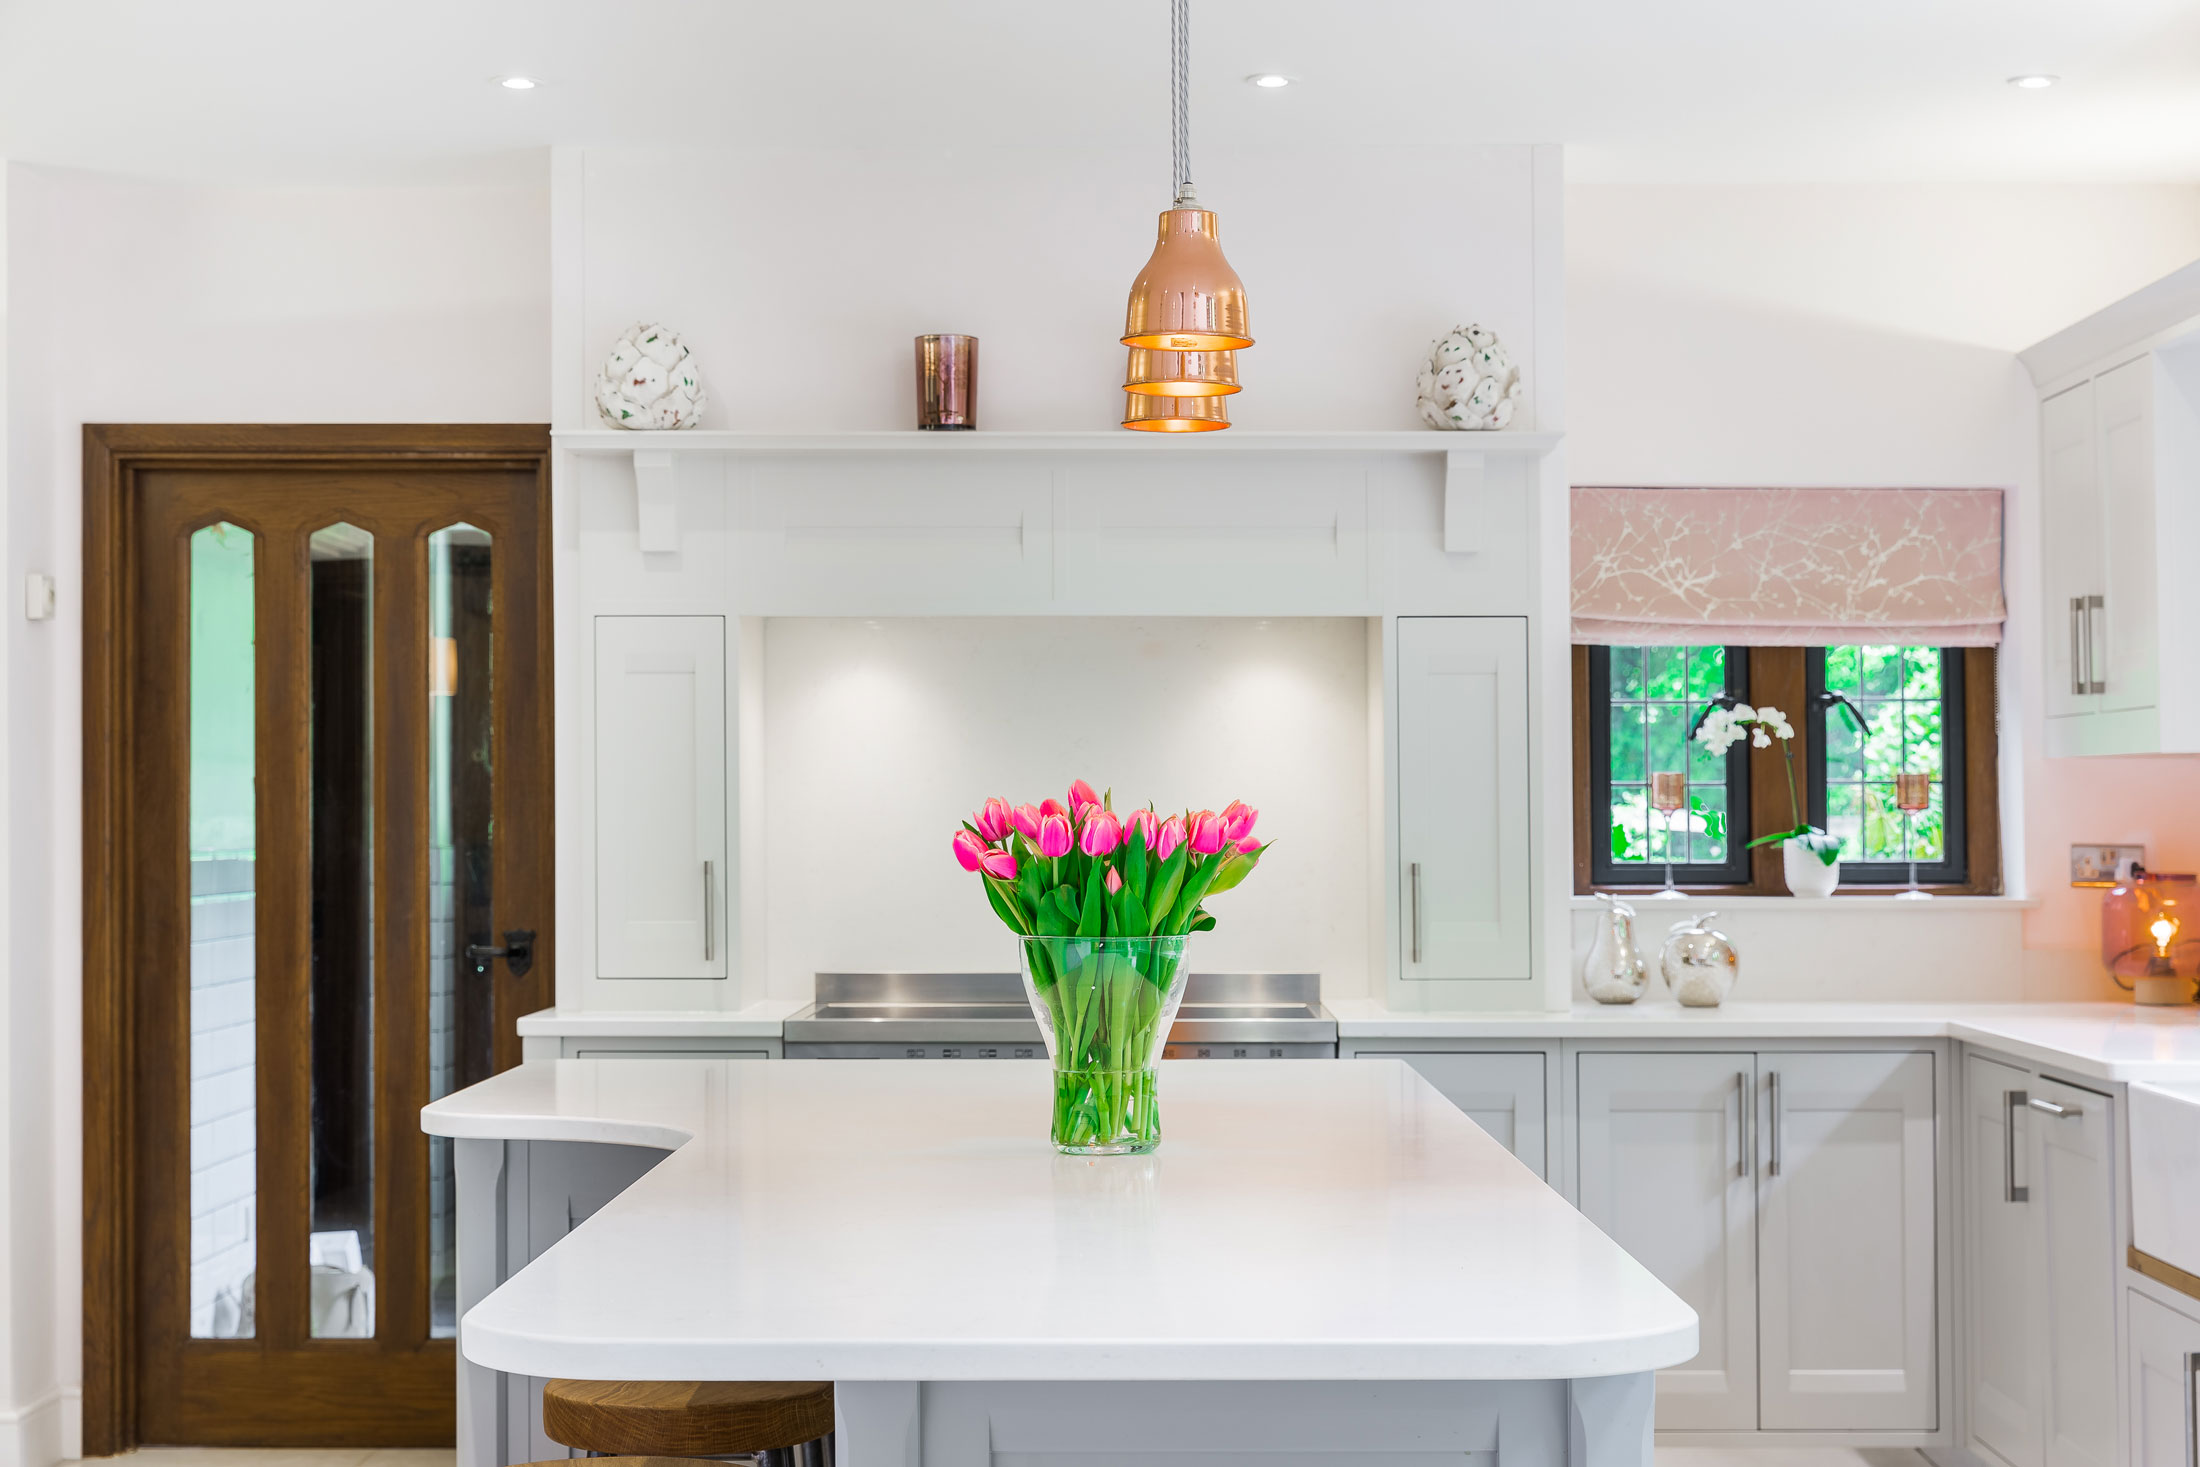 Enchanting Zoes Kitchen Greenville Nc Images - Kitchen Cabinets ...